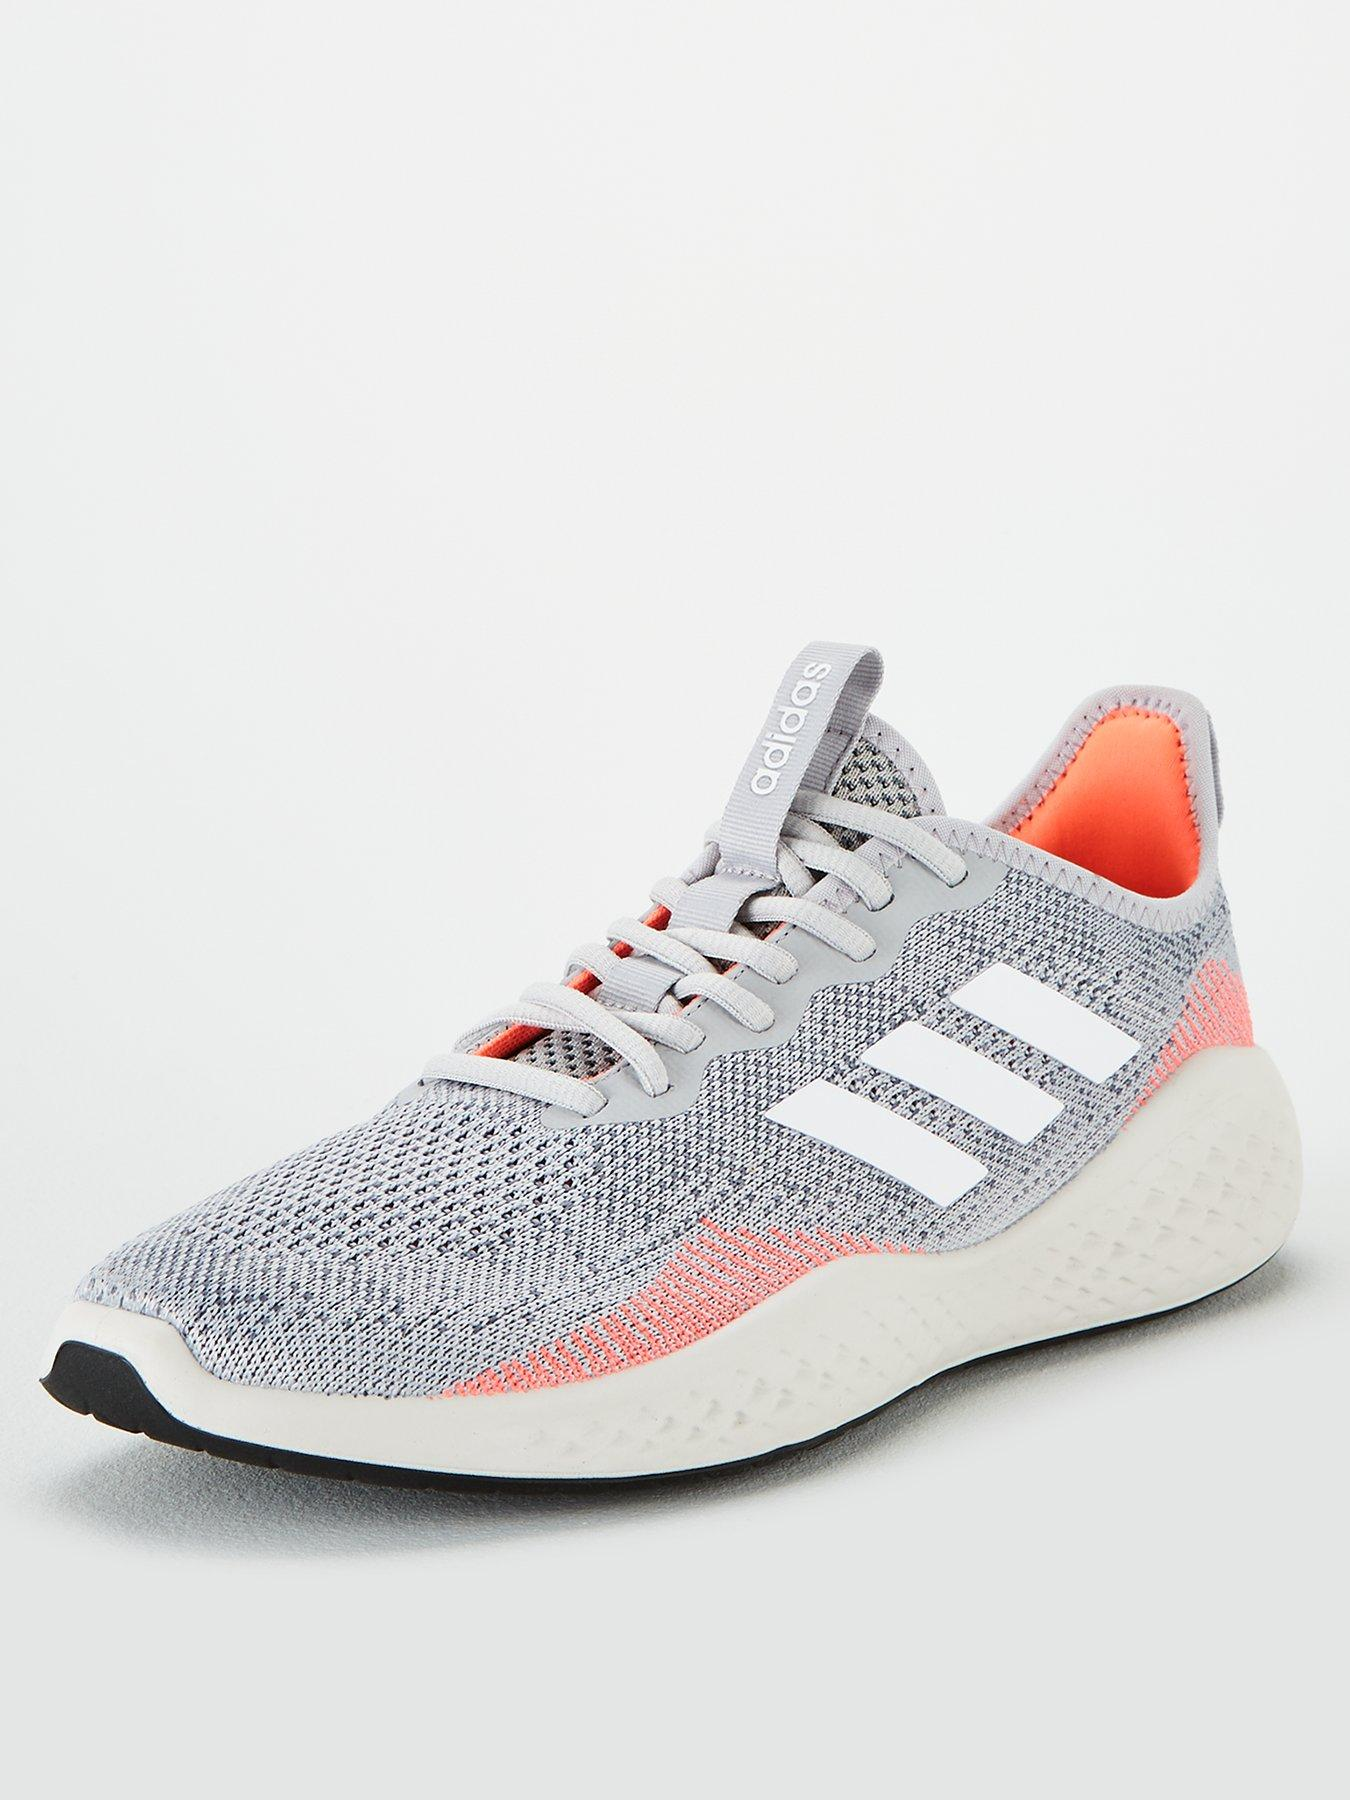 Adidas Trainers   Mens Adidas Trainers